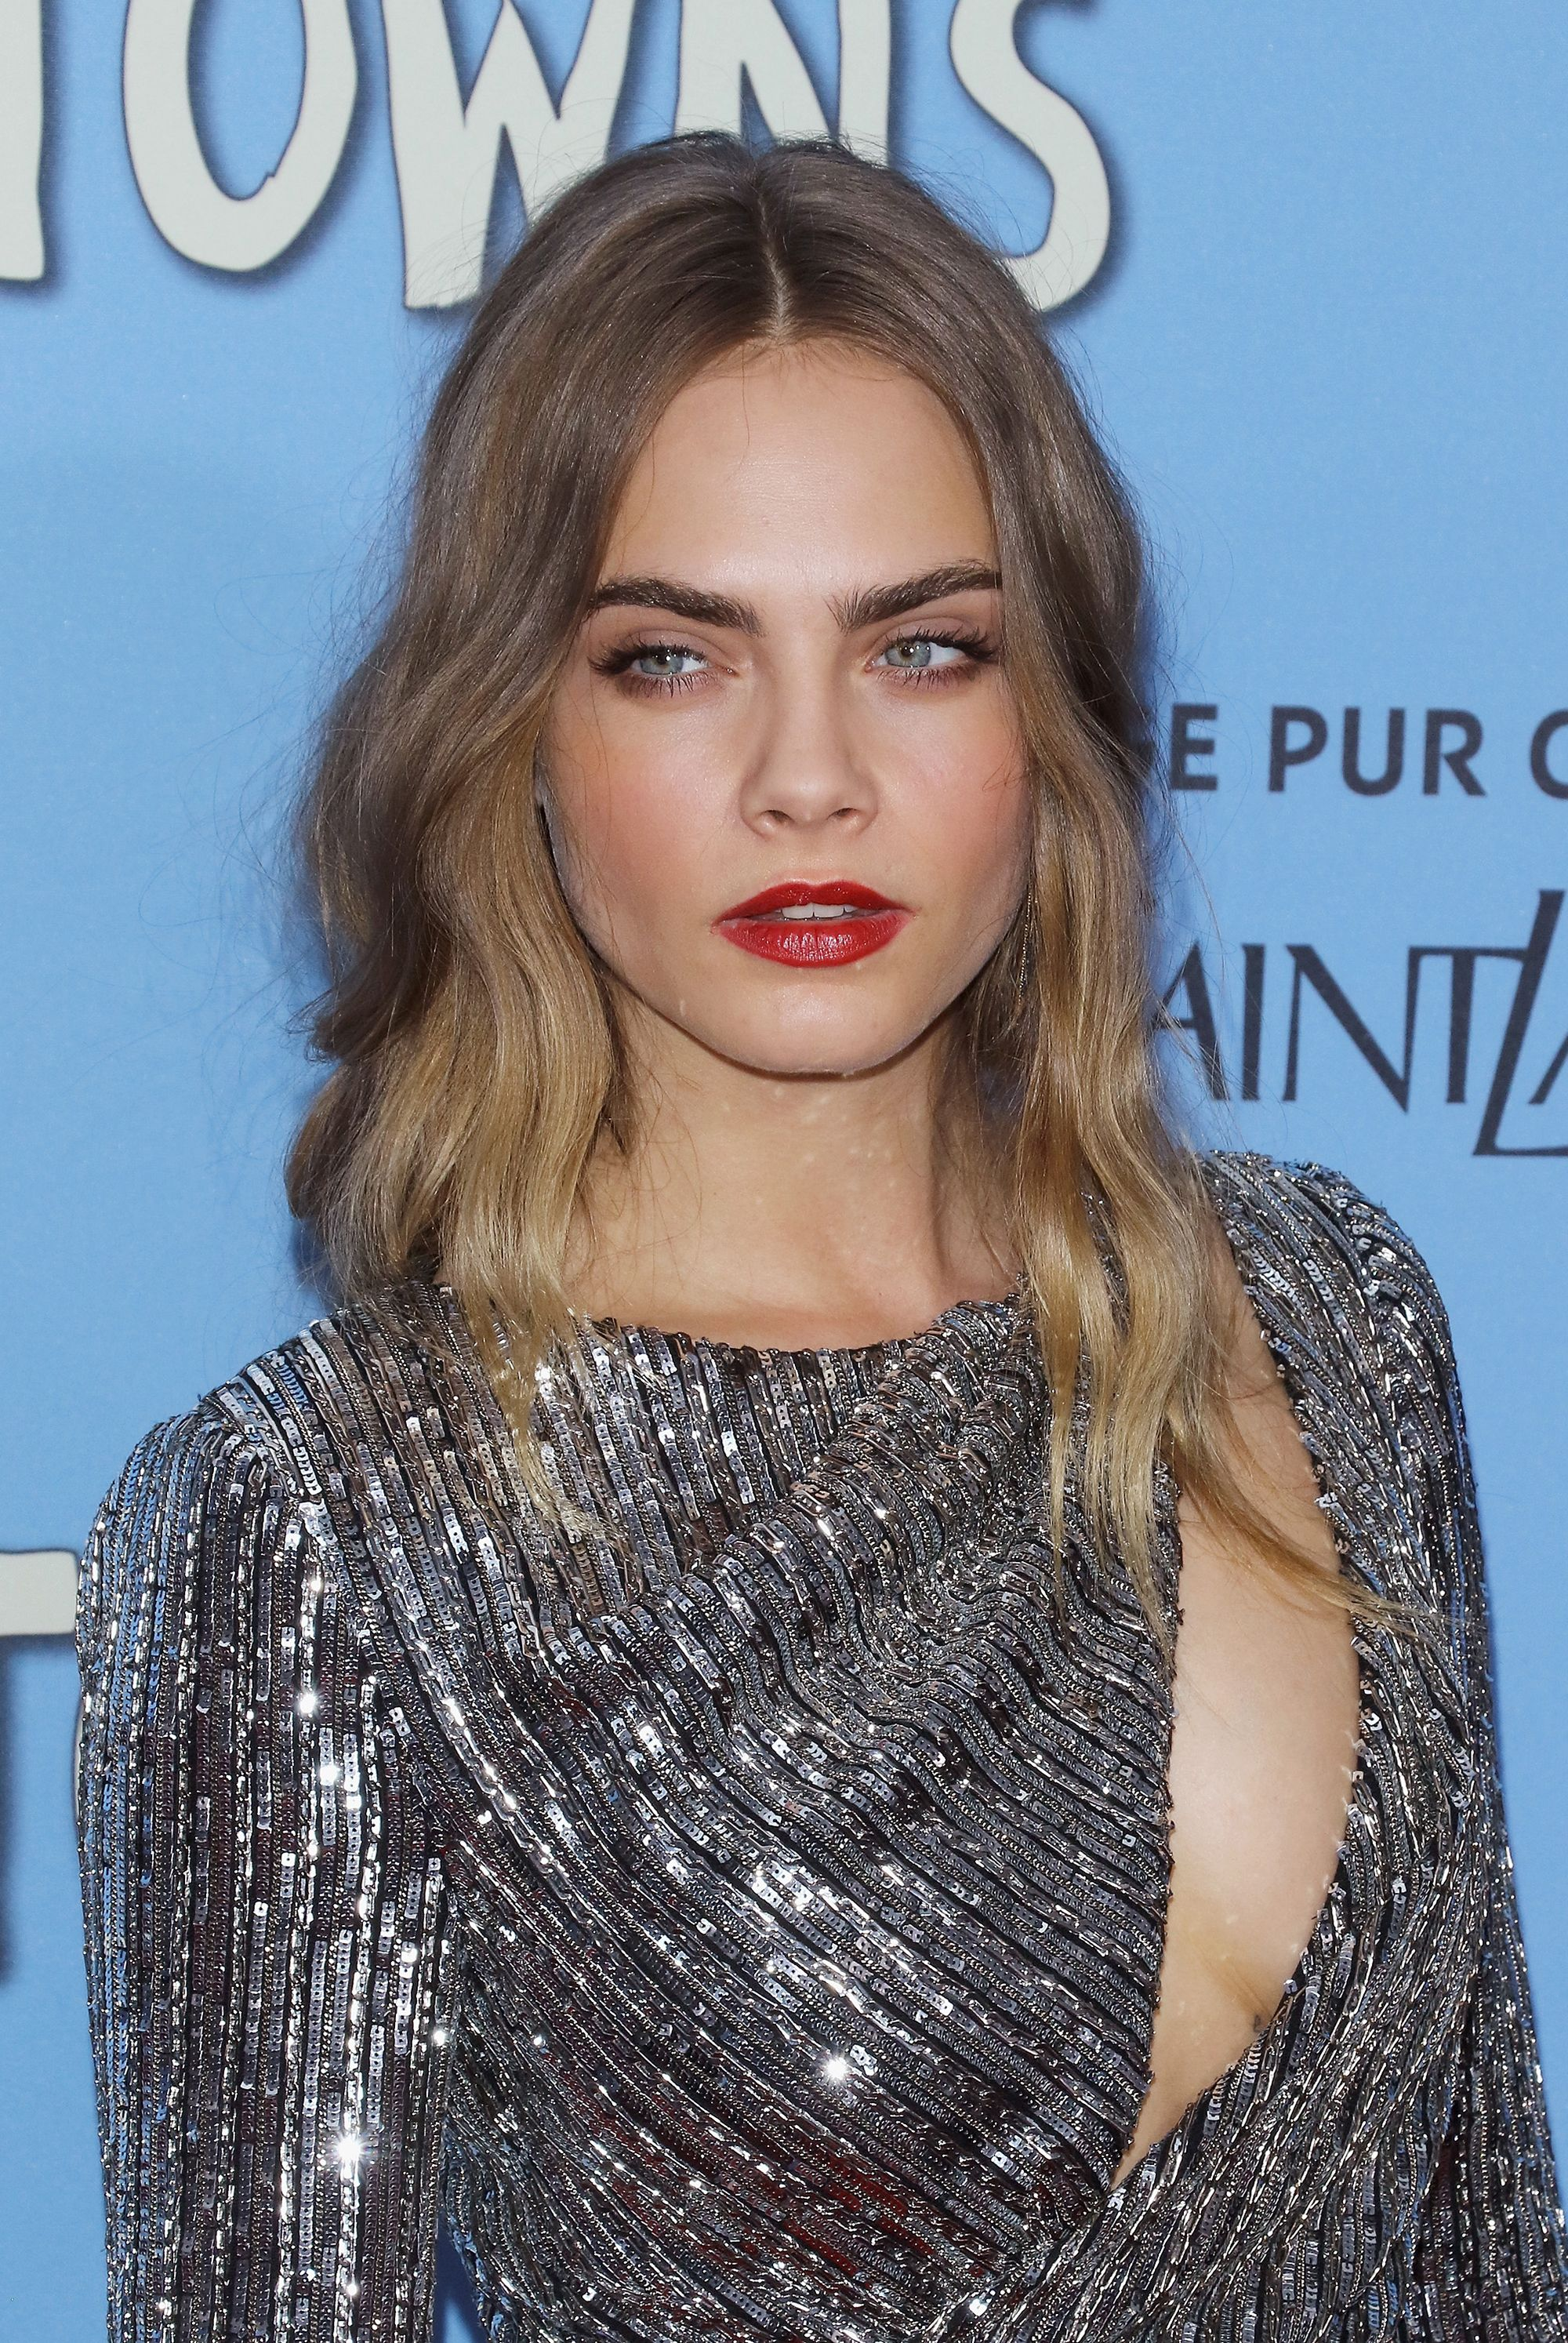 Are You Bored of Your Makeup? Cara Delevingne Makes the Case for a Calculated Beauty Risk